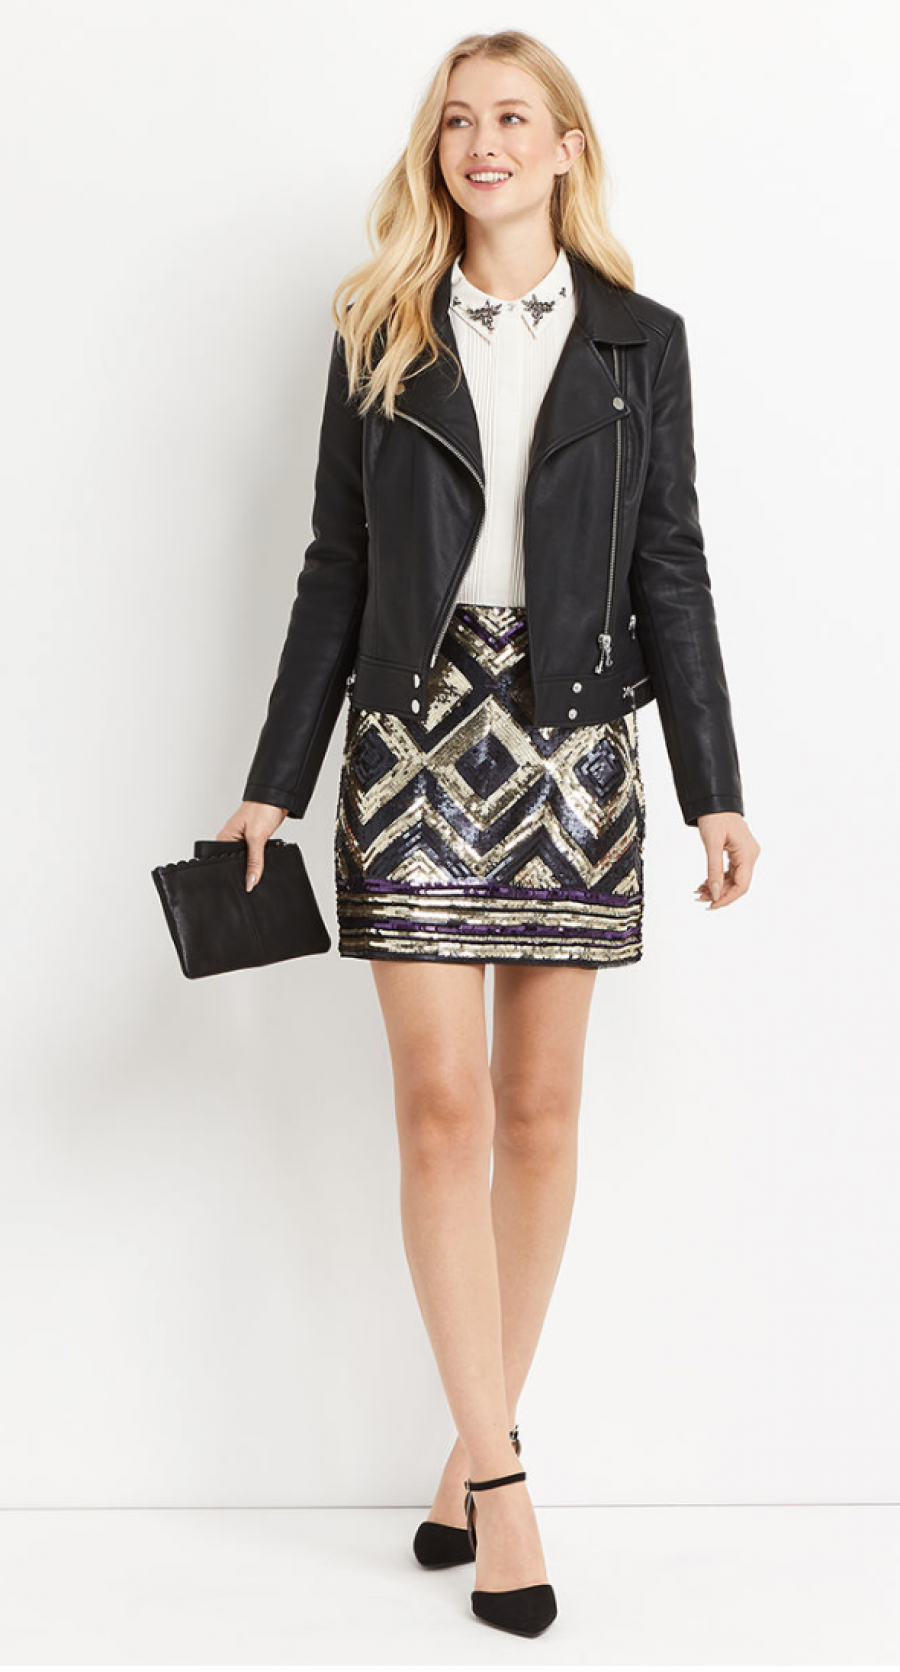 See Need Want Fashion Trend Sequinned Skirt Oasis